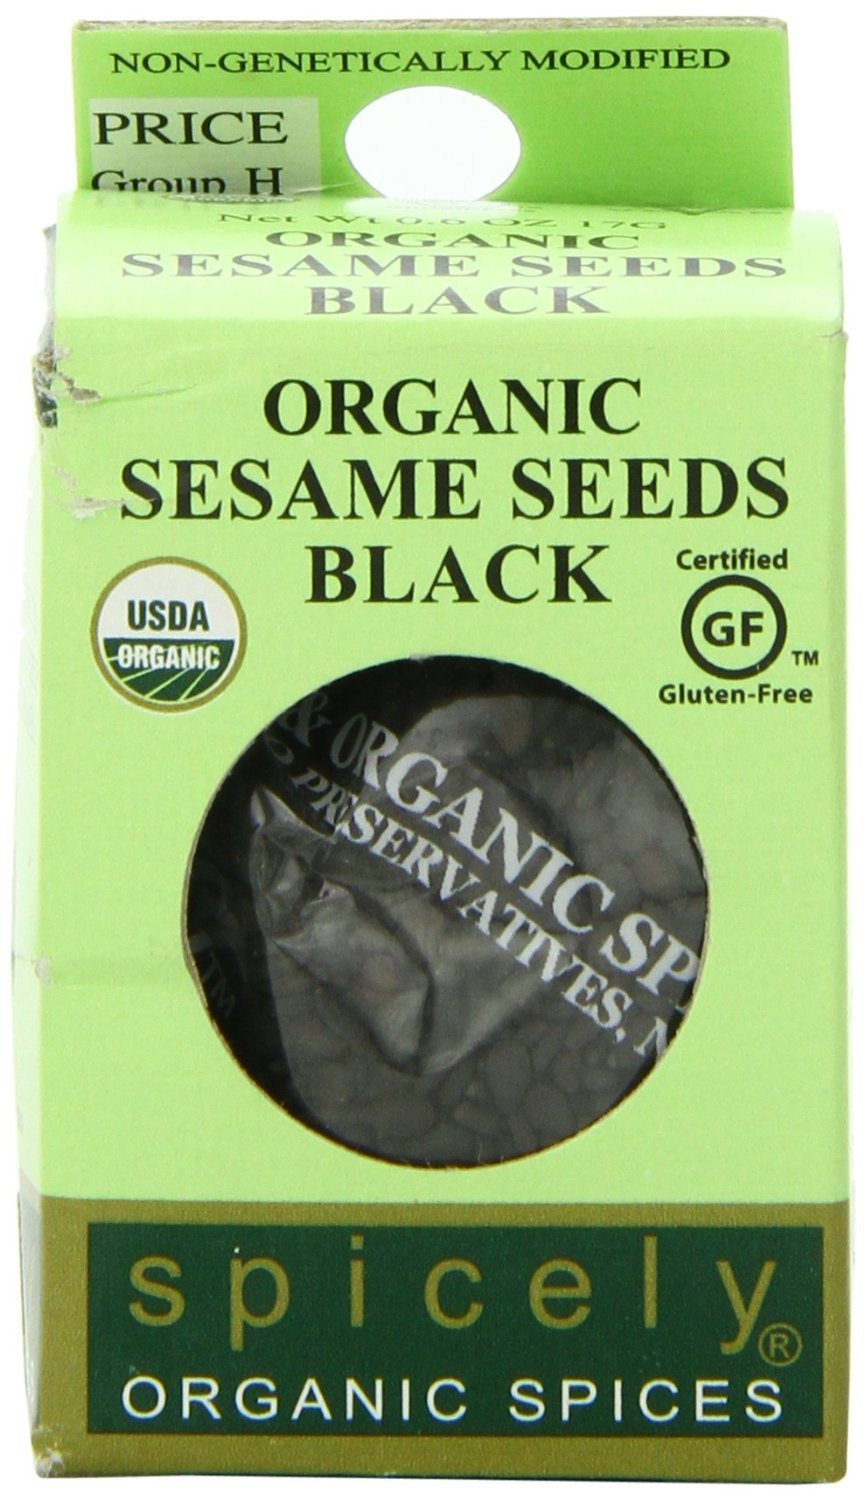 Spicely Organic Sesame Seeds Black Whole 0.45 Ounce ecoBox Certified Gluten Free